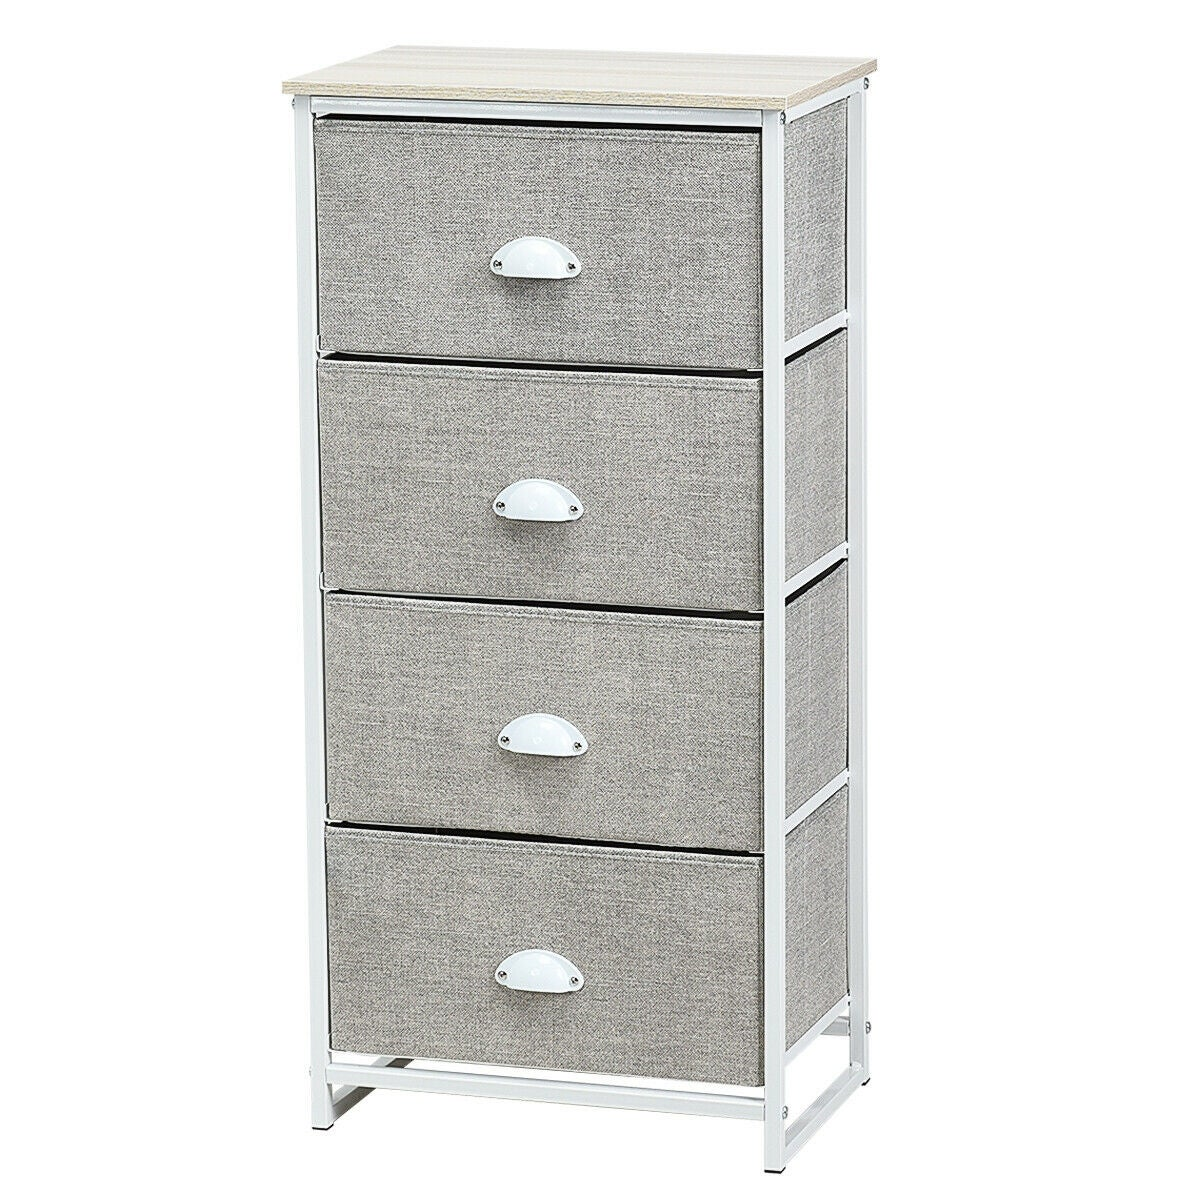 Gymax 4 Drawers Dresser Chest Storage Tower Side Table Display Home Furniture Office